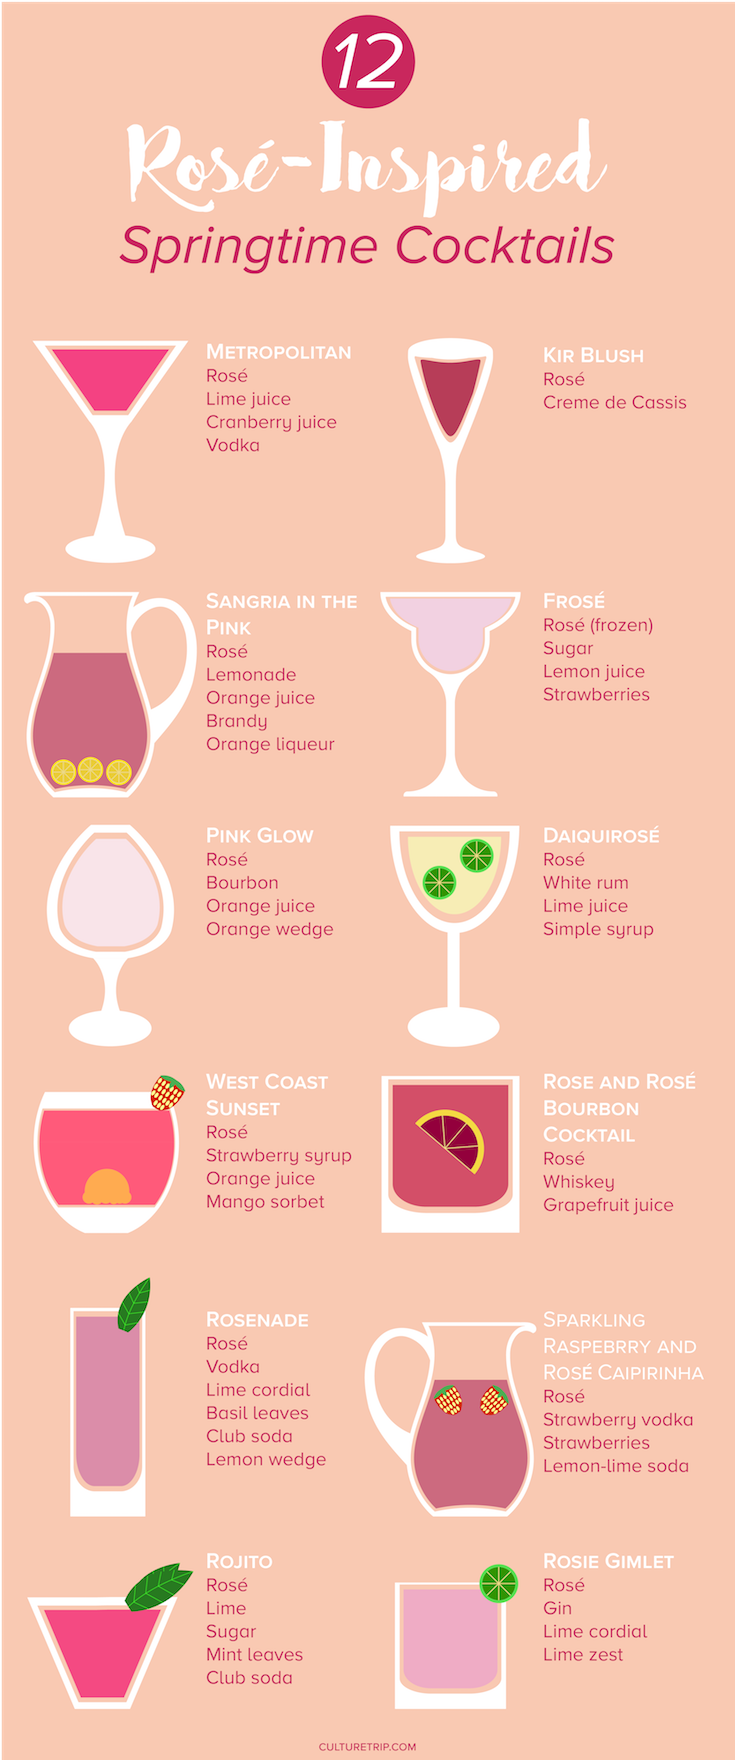 12 Springtime Cocktails To Make With Rosé The blossom coloured wine is delicious and inexpensive, and is versatile enough to be an ingredient in a plethora of cocktails. Springtime Cocktails To Make With Rosé The blossom coloured wine is delicious and inexpensive, and is versatile enough to be an ingredient in a plethora of cocktails.The blossom coloured wine is delicious and inexpensive, and is versatile enough to be an ingredient in a plethora of cocktails.